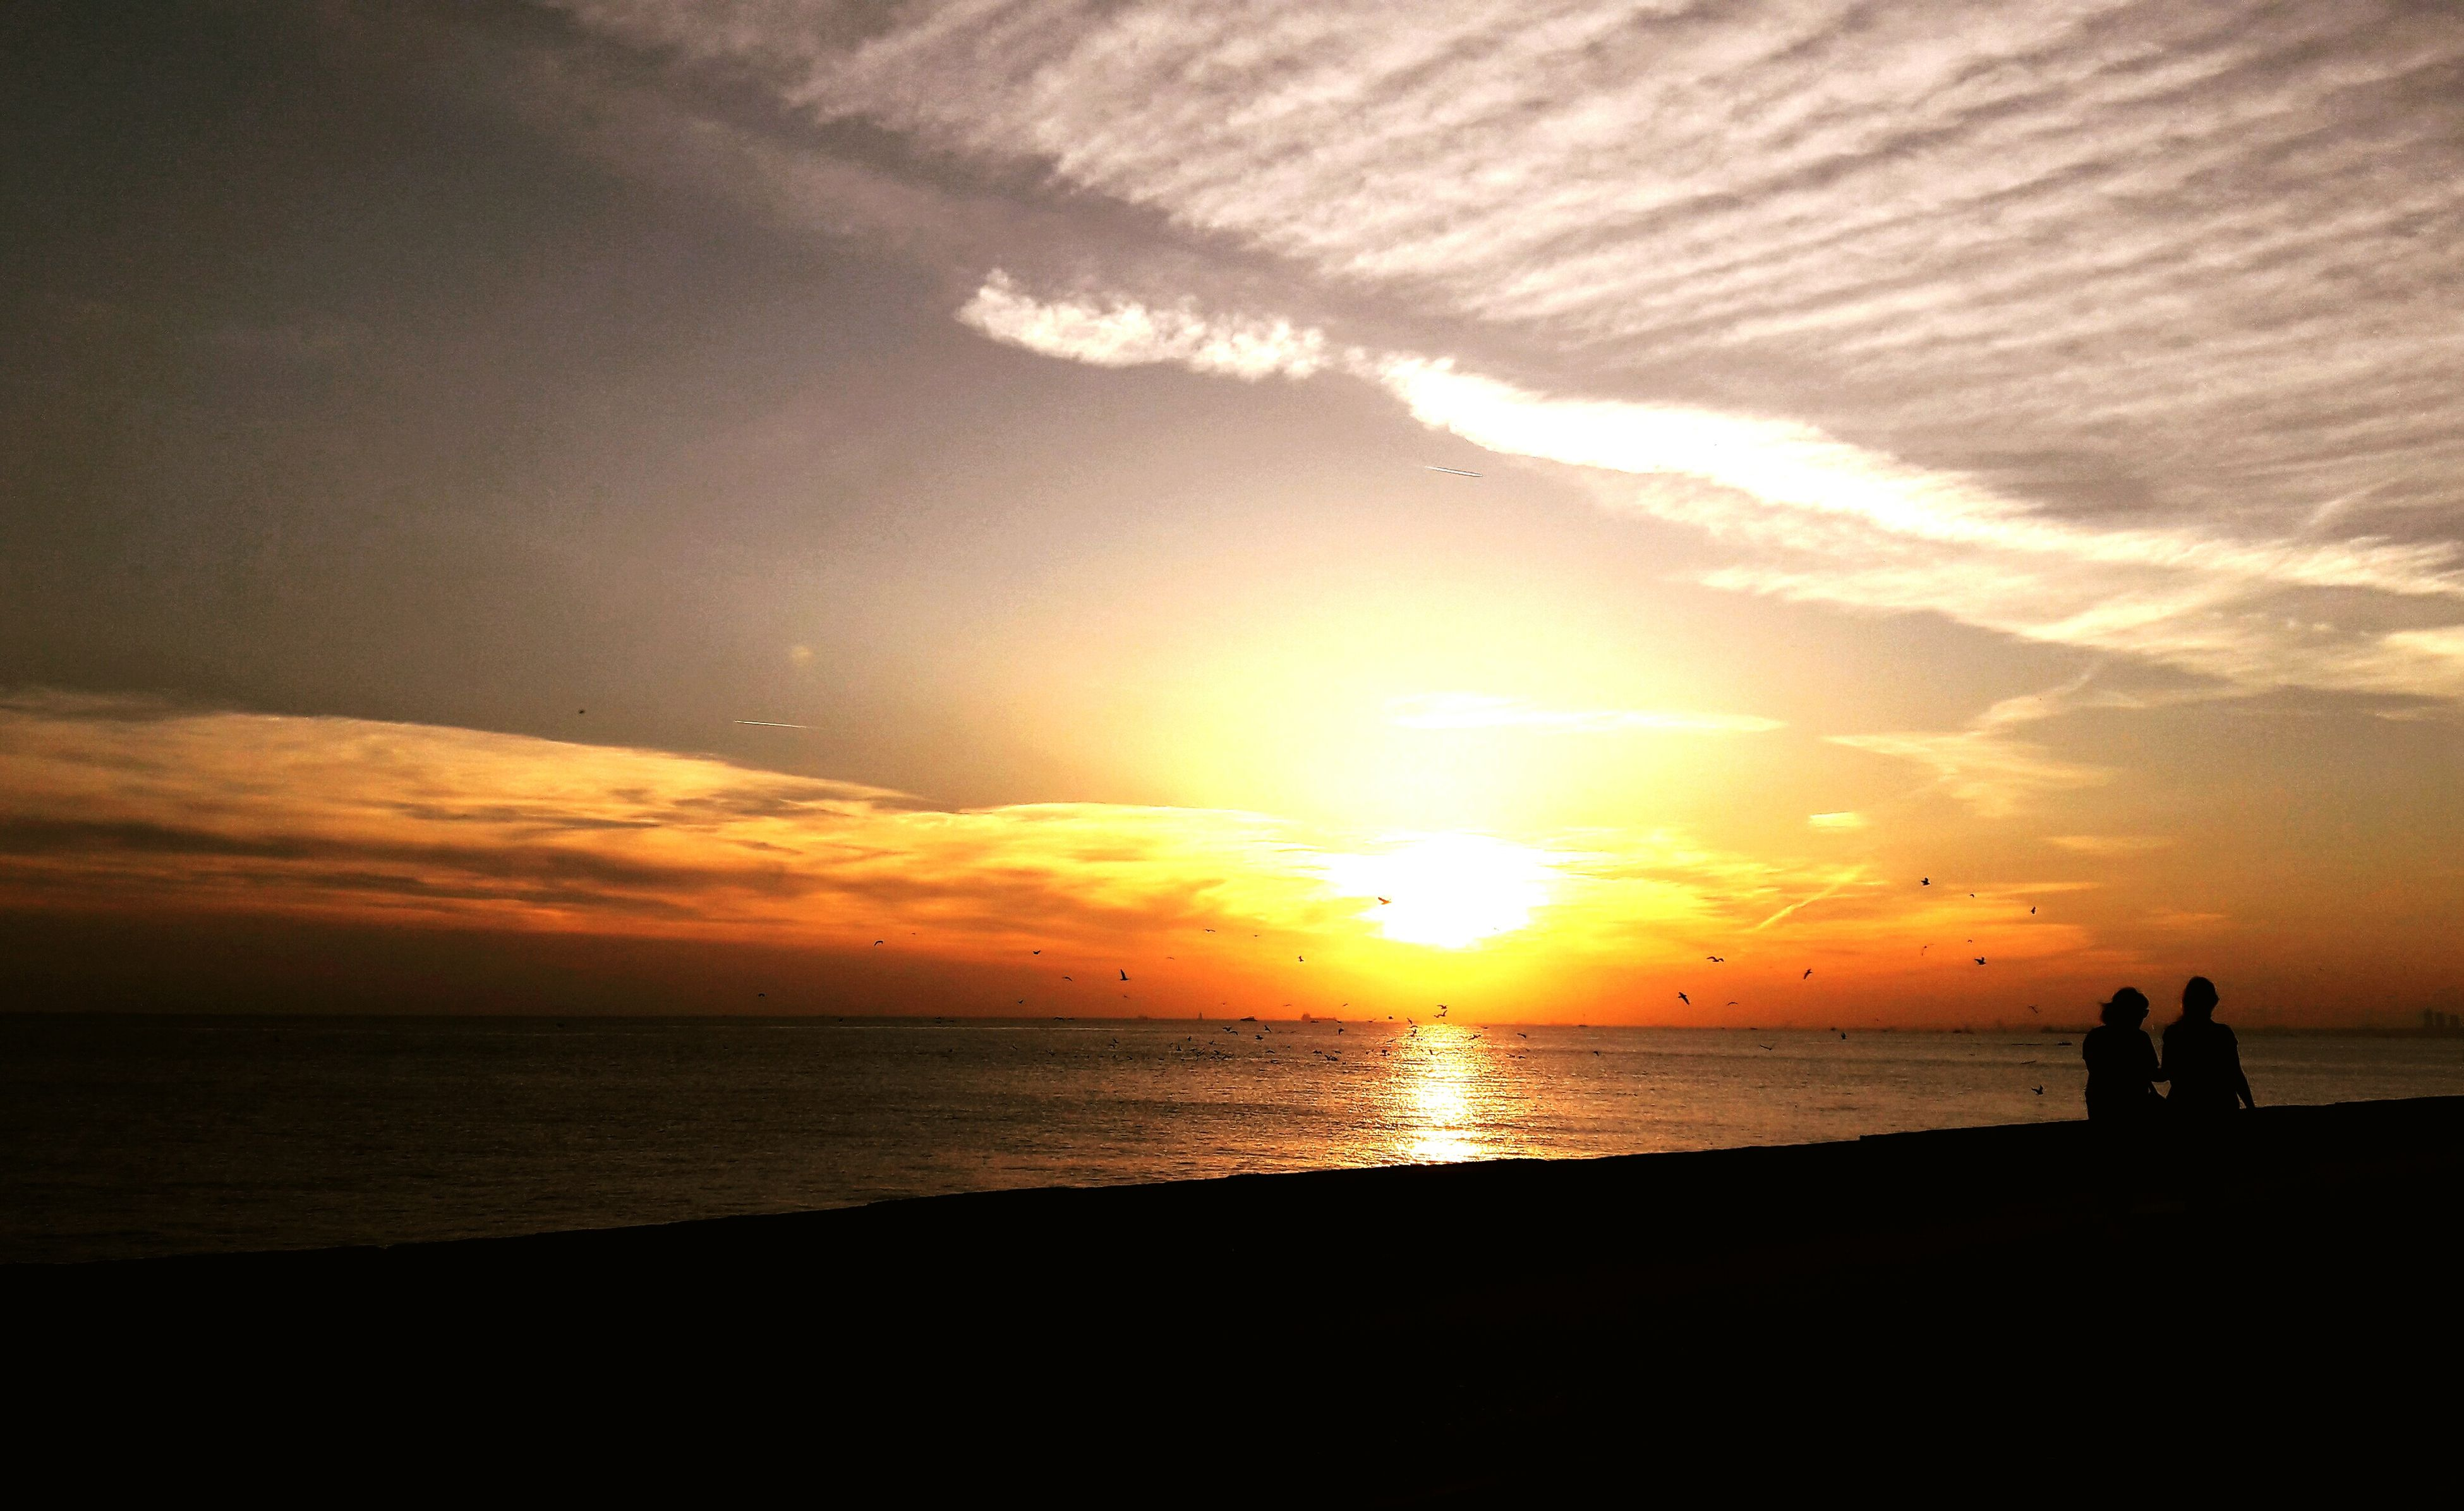 sunset, sea, water, horizon over water, silhouette, scenics, tranquil scene, beach, tranquility, sun, beauty in nature, idyllic, sky, nature, reflection, orange color, shore, cloud, calm, remote, majestic, outdoors, cloud - sky, ocean, vacations, moody sky, romantic sky, outline